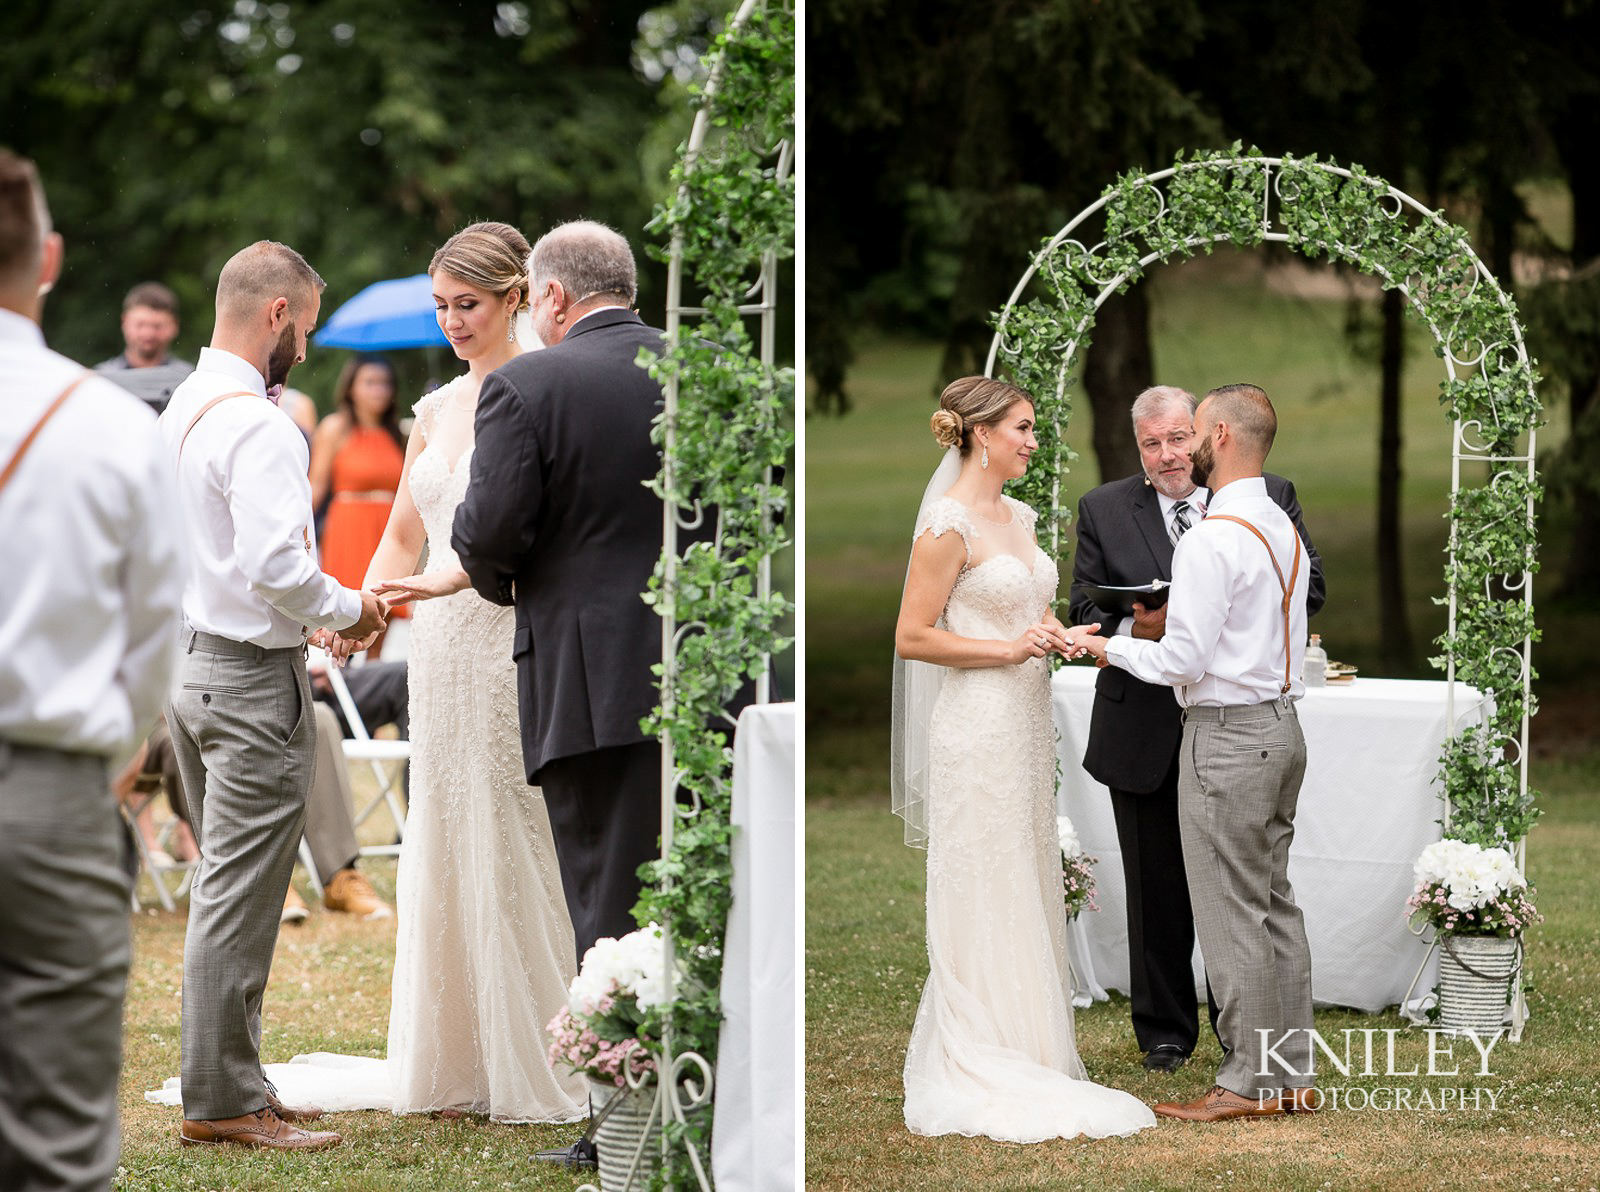 052 - Ontario Golf Club Wedding Pictures collage.jpg